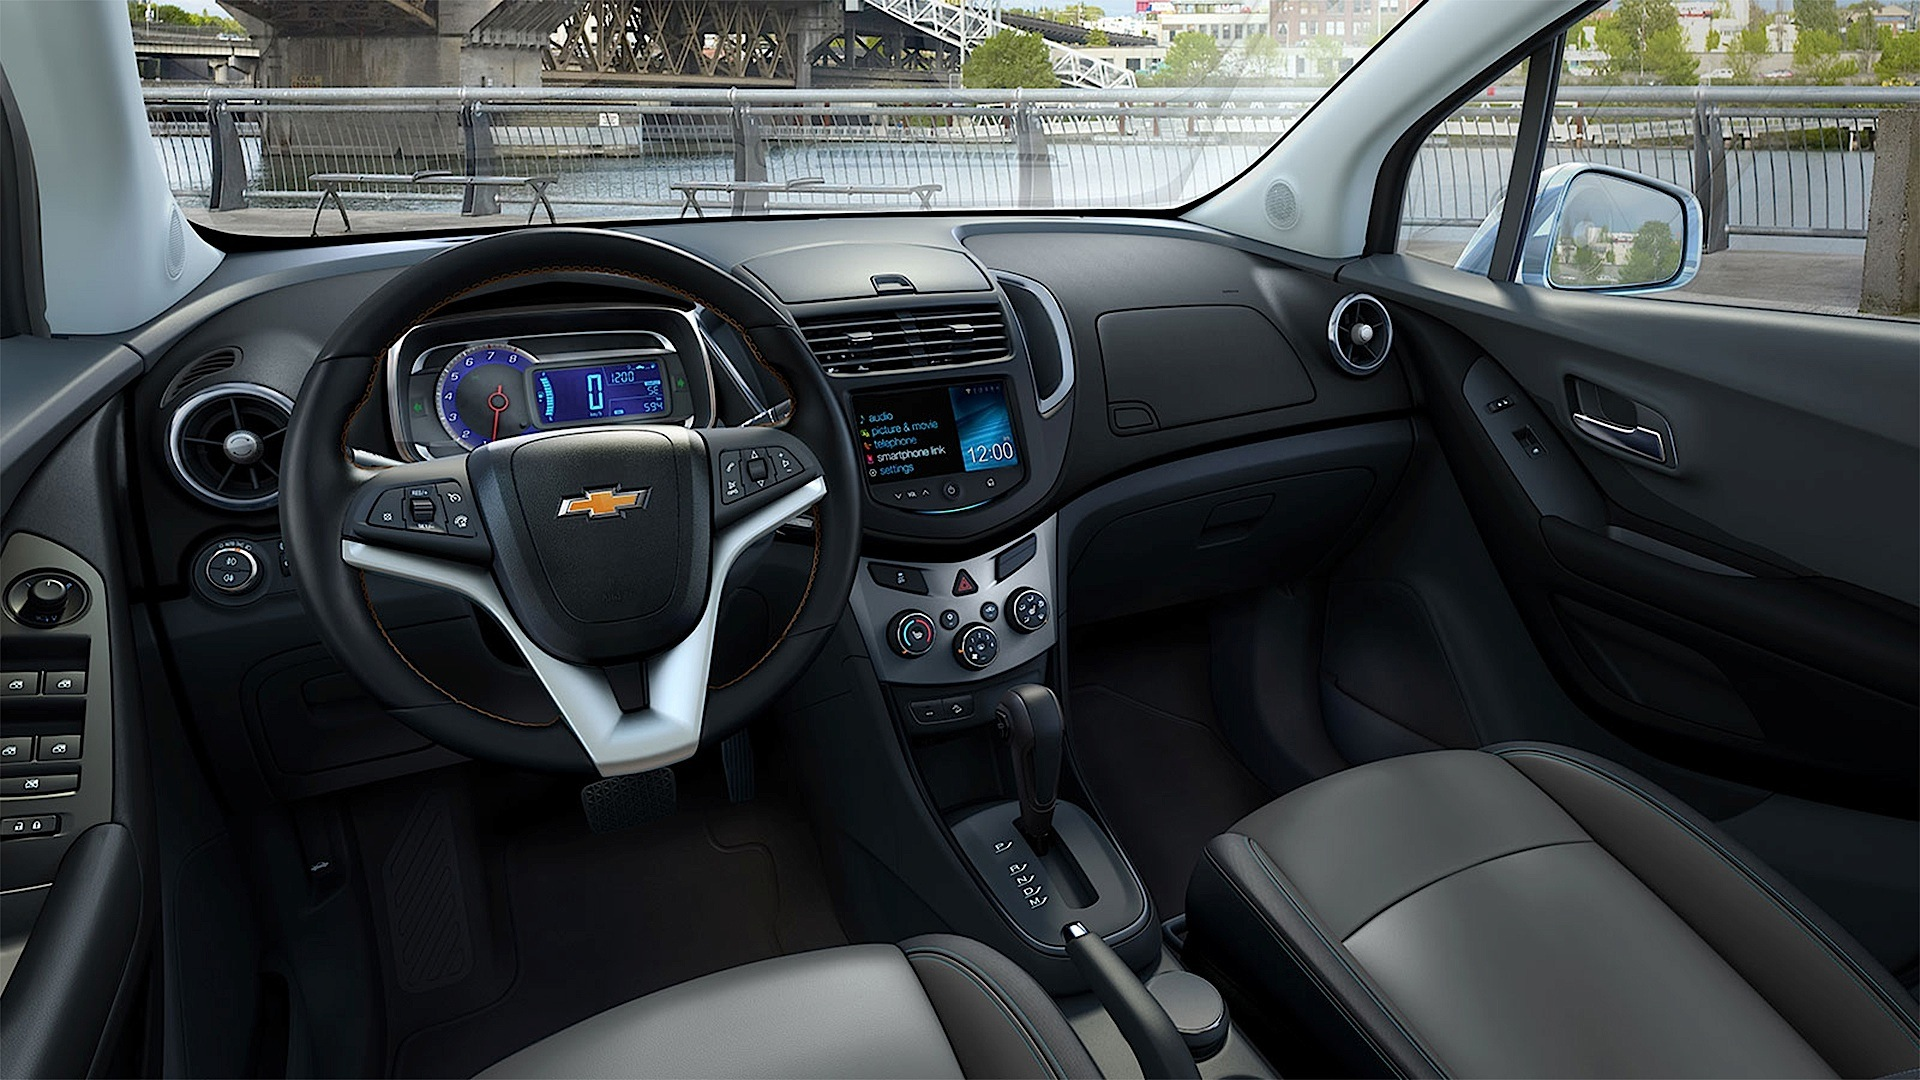 chevrolet tracker pictures #2